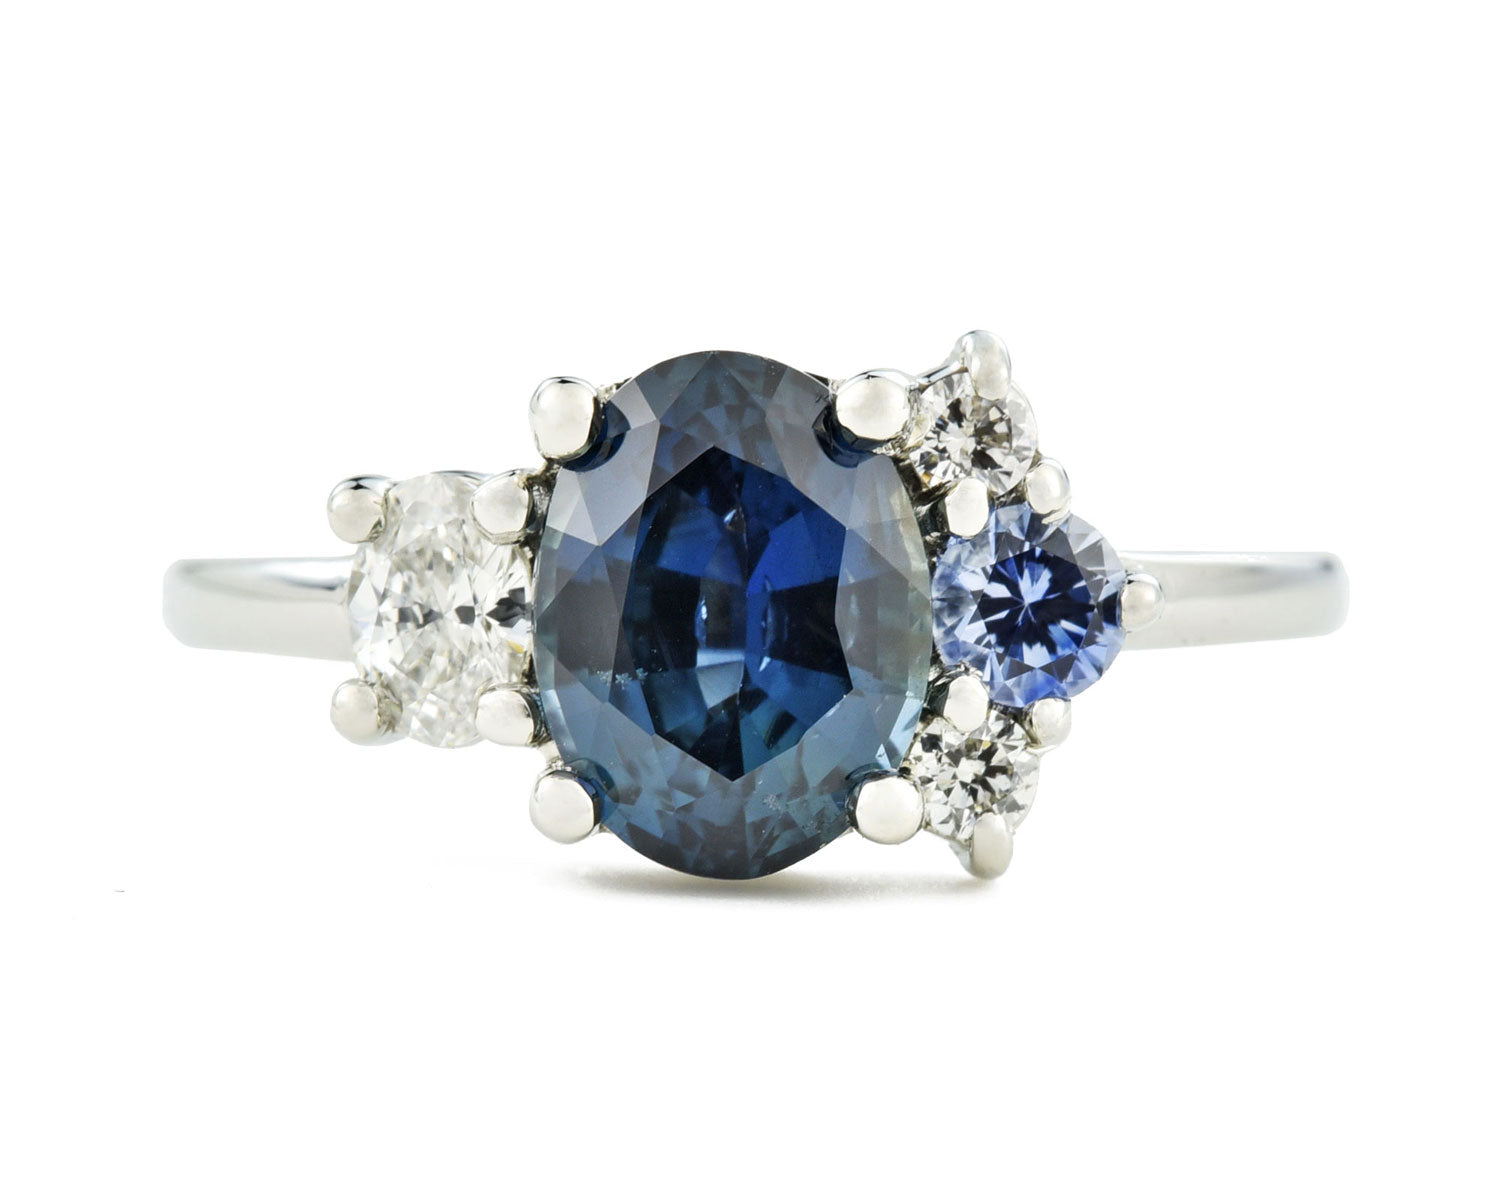 Blue sapphire cluster ring